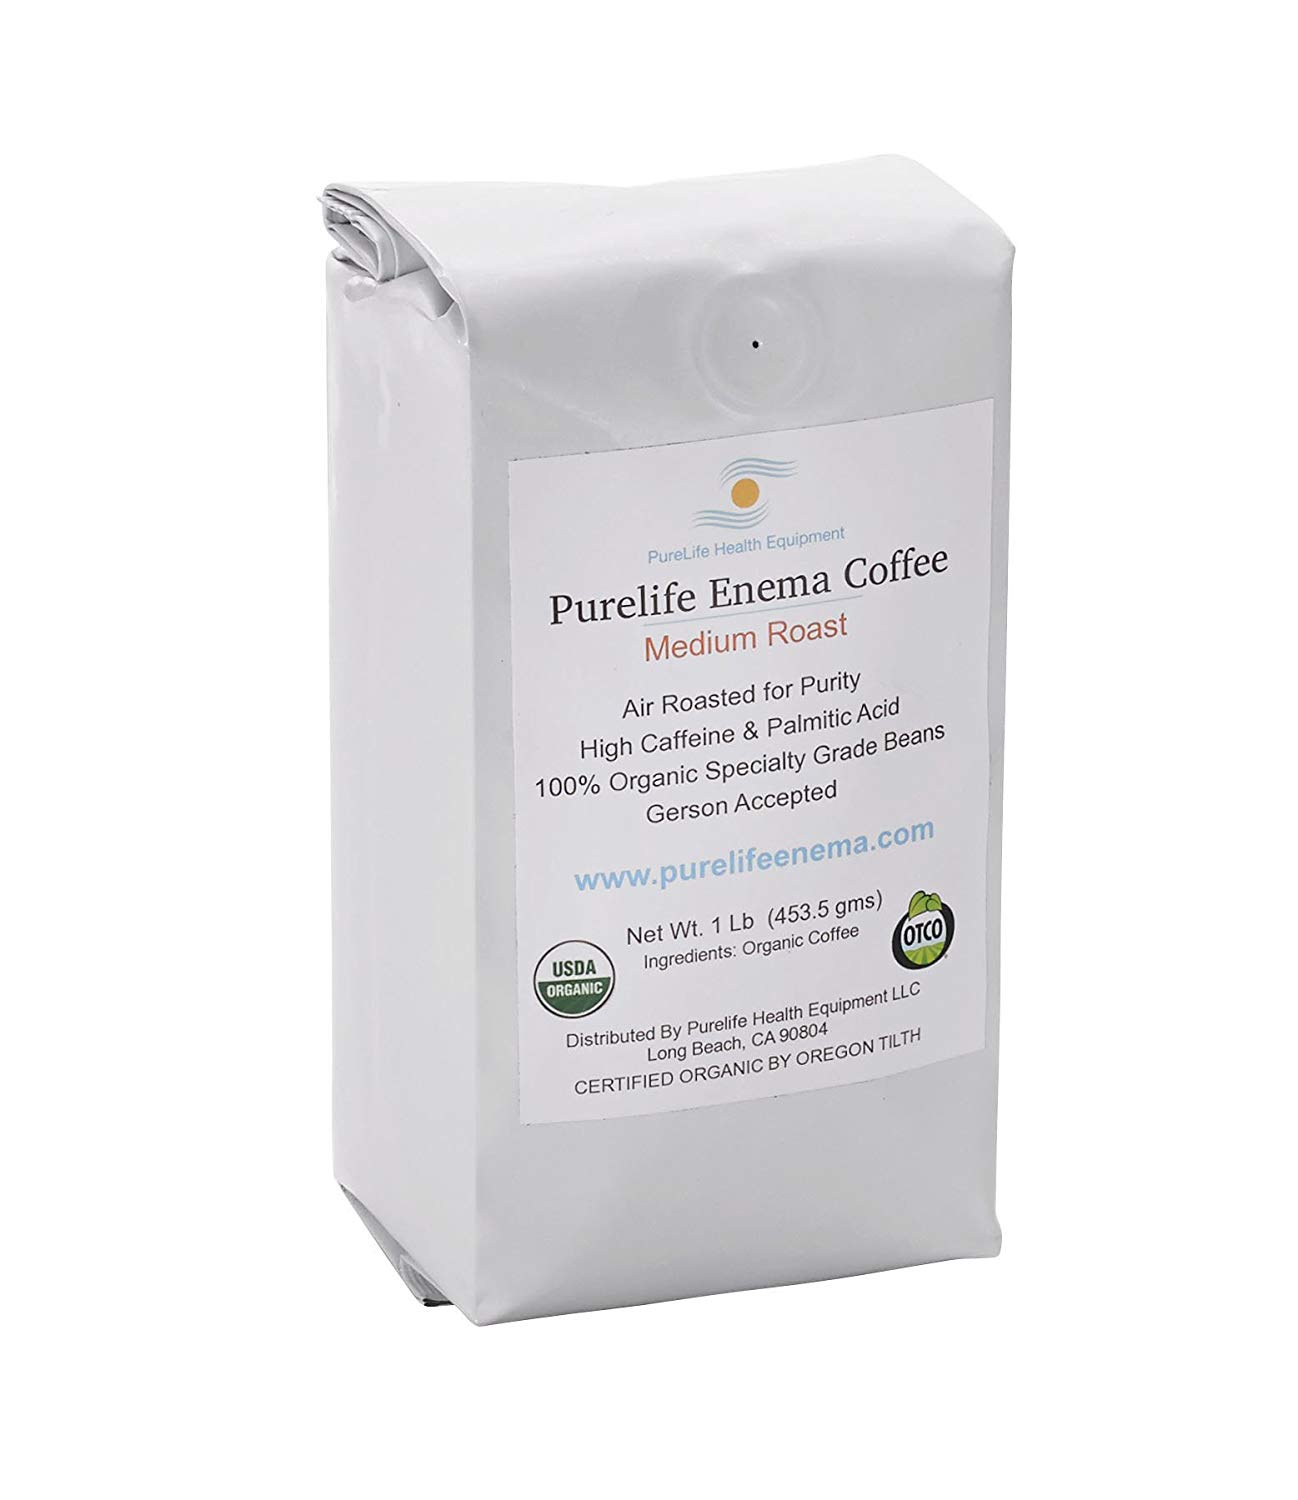 Purelife Mold-Free Coffee for Enemas- Whole Bean - Medium Air Roast -100% Organic/Gerson Recommended - Ships Direct and Fresh From Purelife Enema